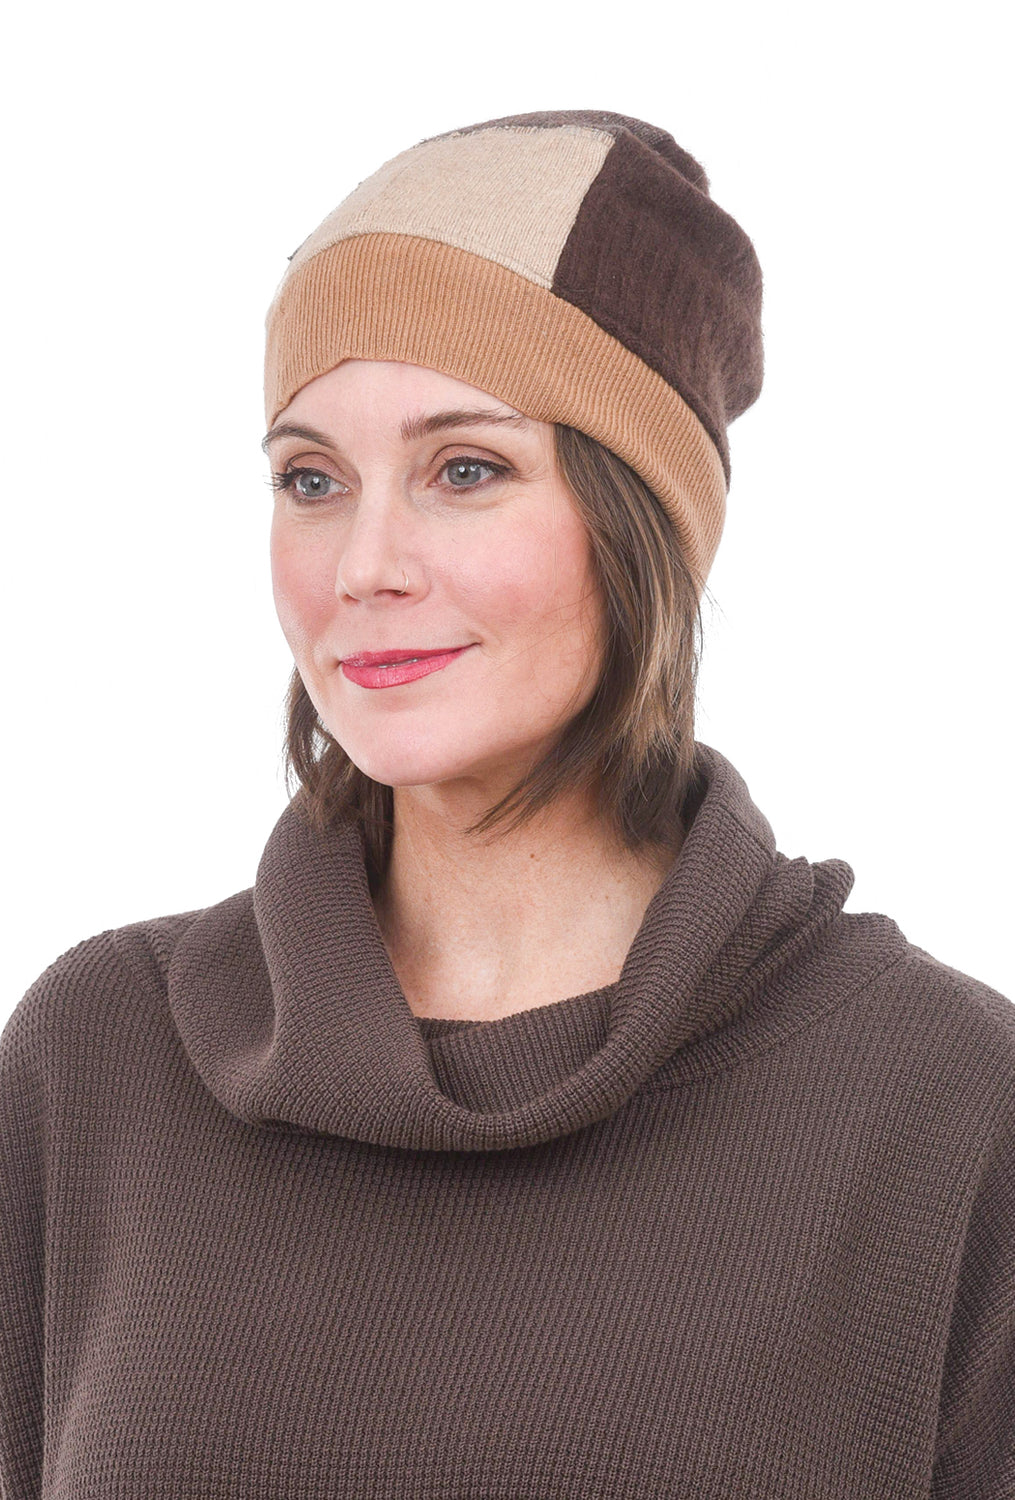 Sardine Clothing Company Recycled Cashmere Hat, Browns One Size Brown